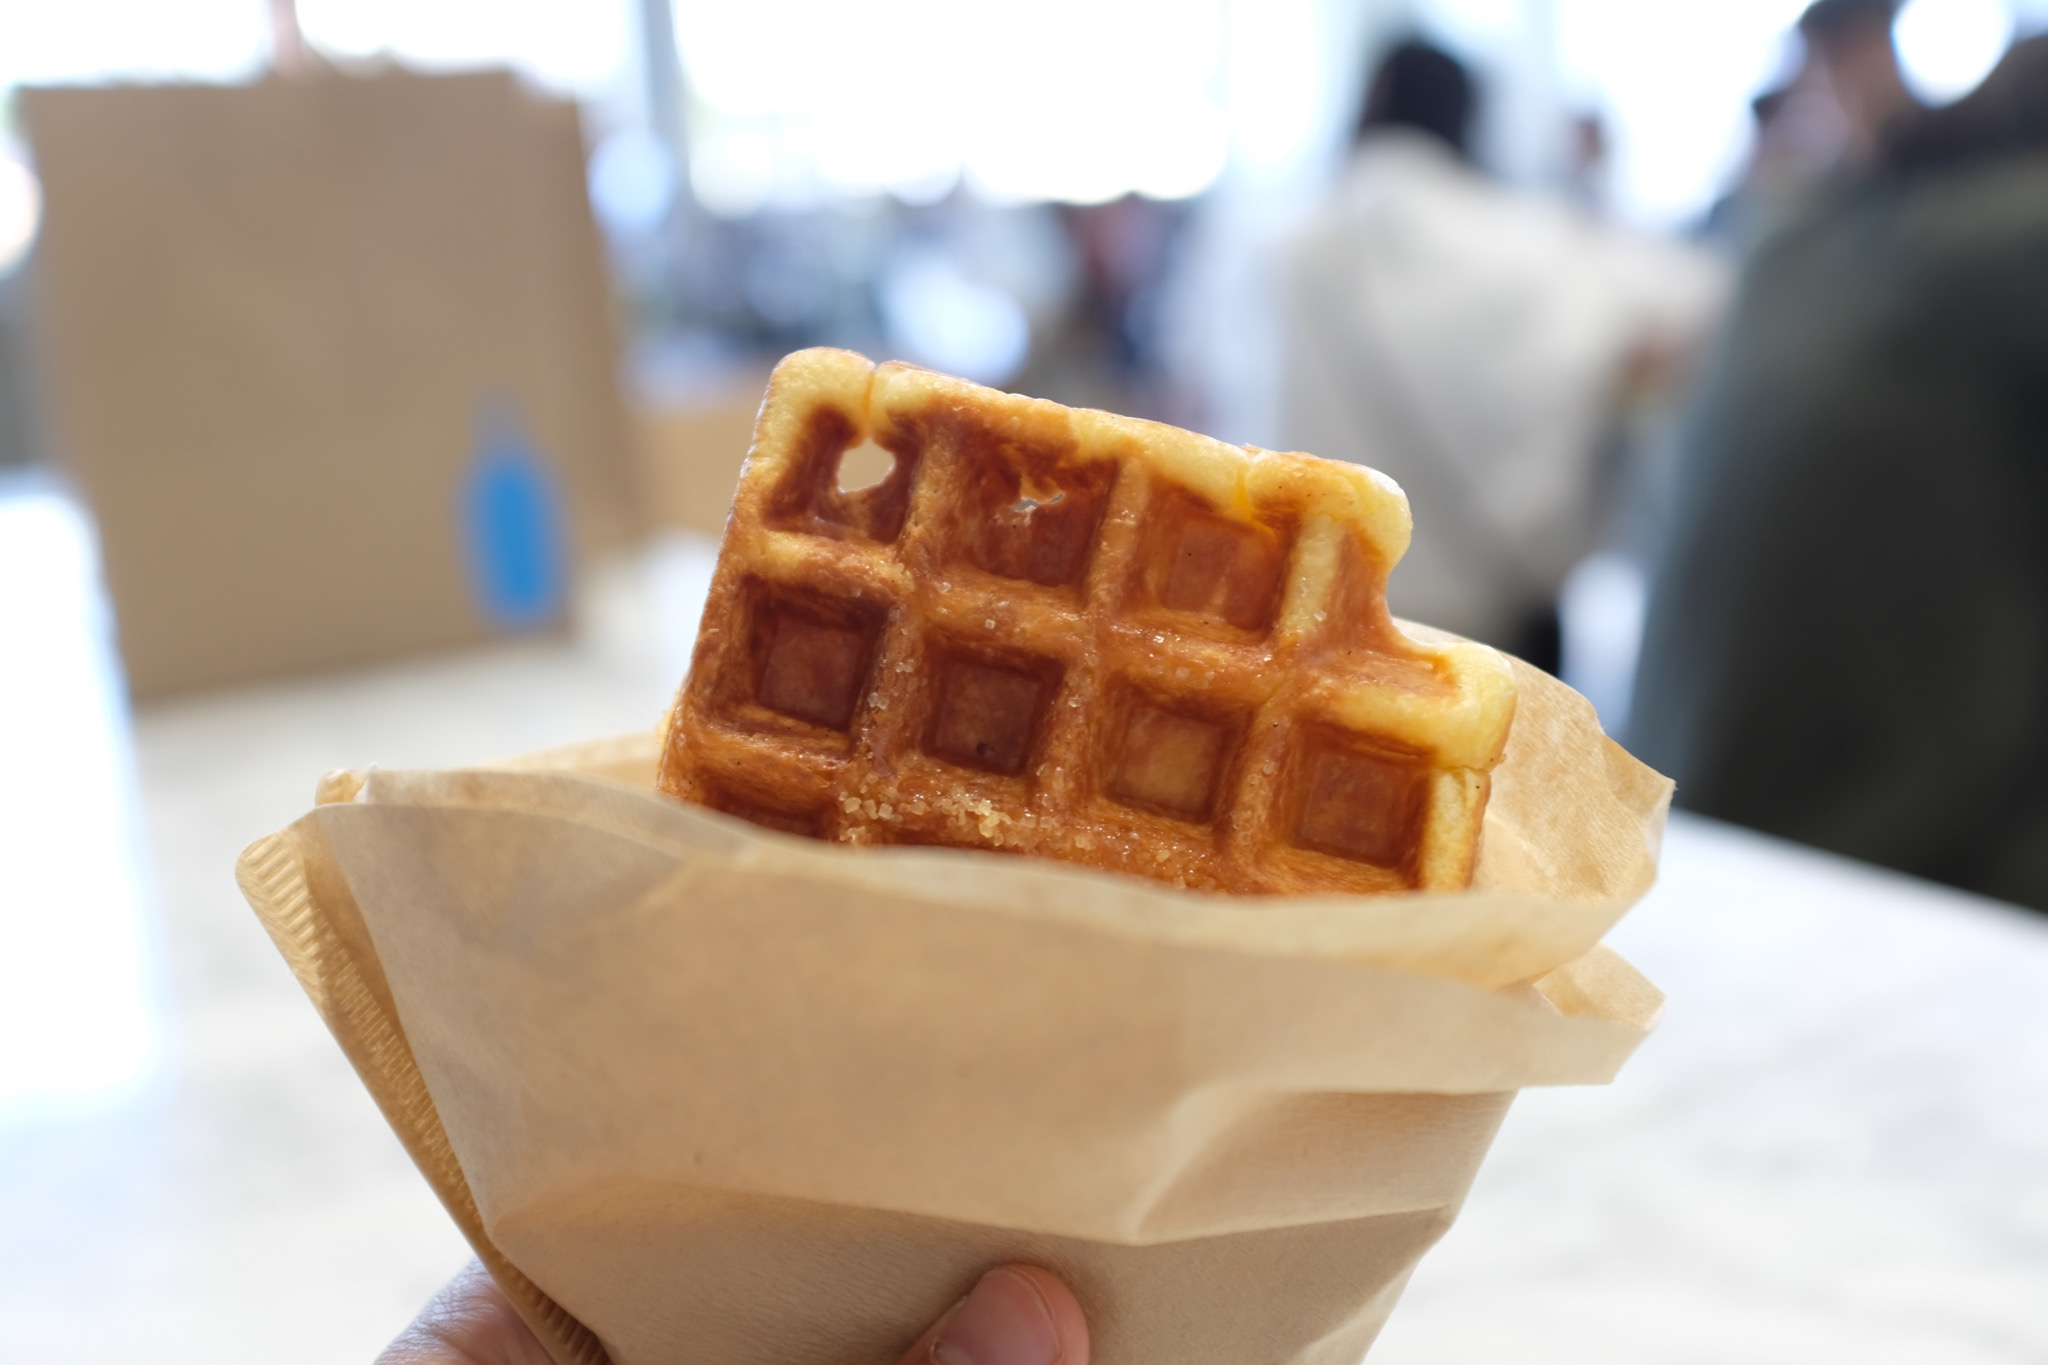 Warm waffle pairs nicely with a good coffee